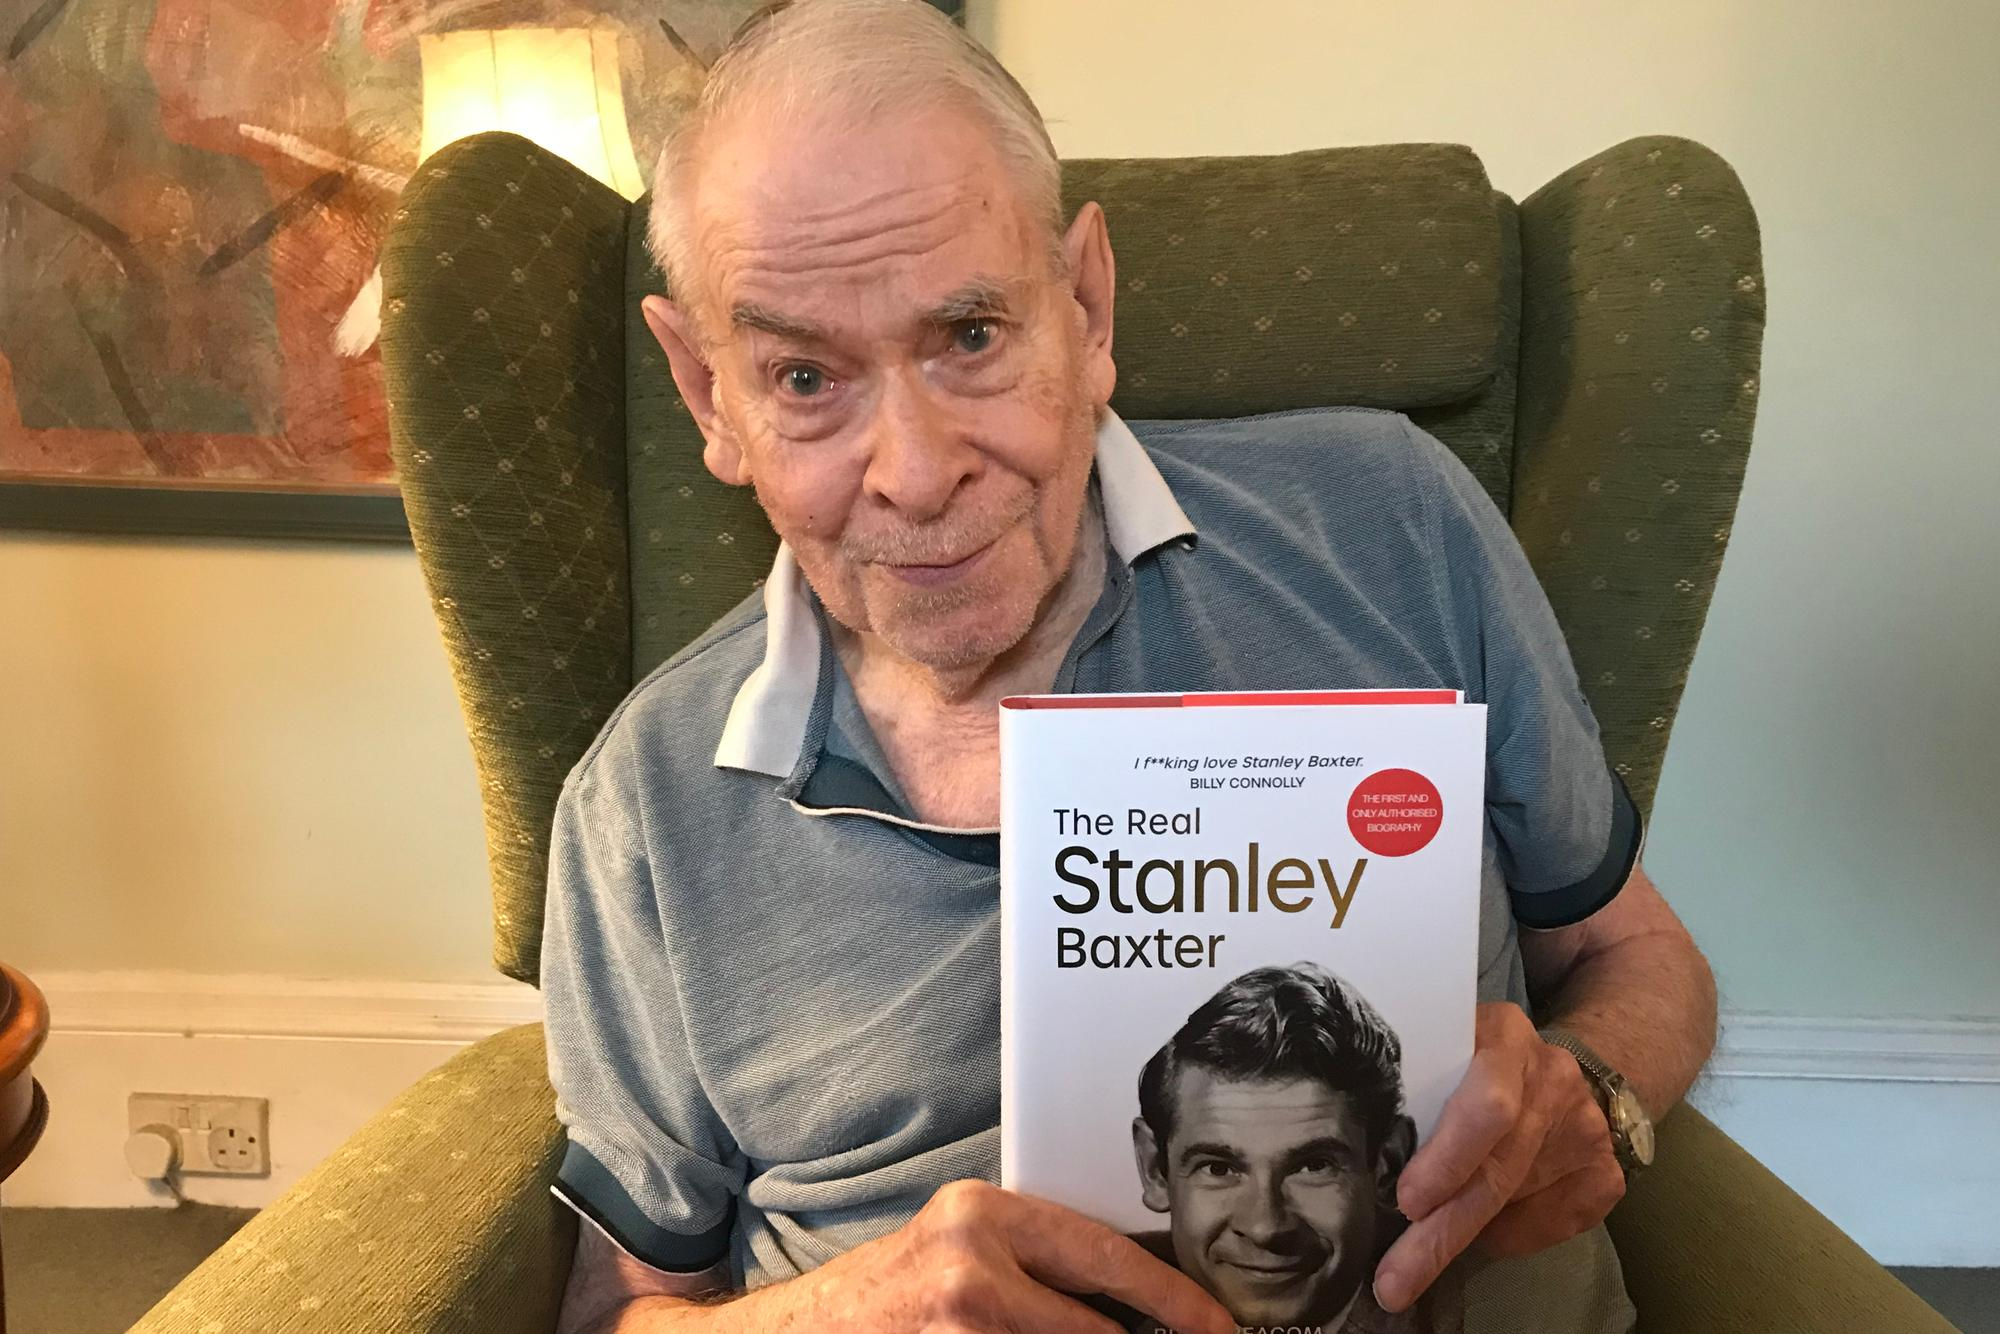 Actor Stanley Baxter comes out as gay in new book lifting the lid on his troubled private life